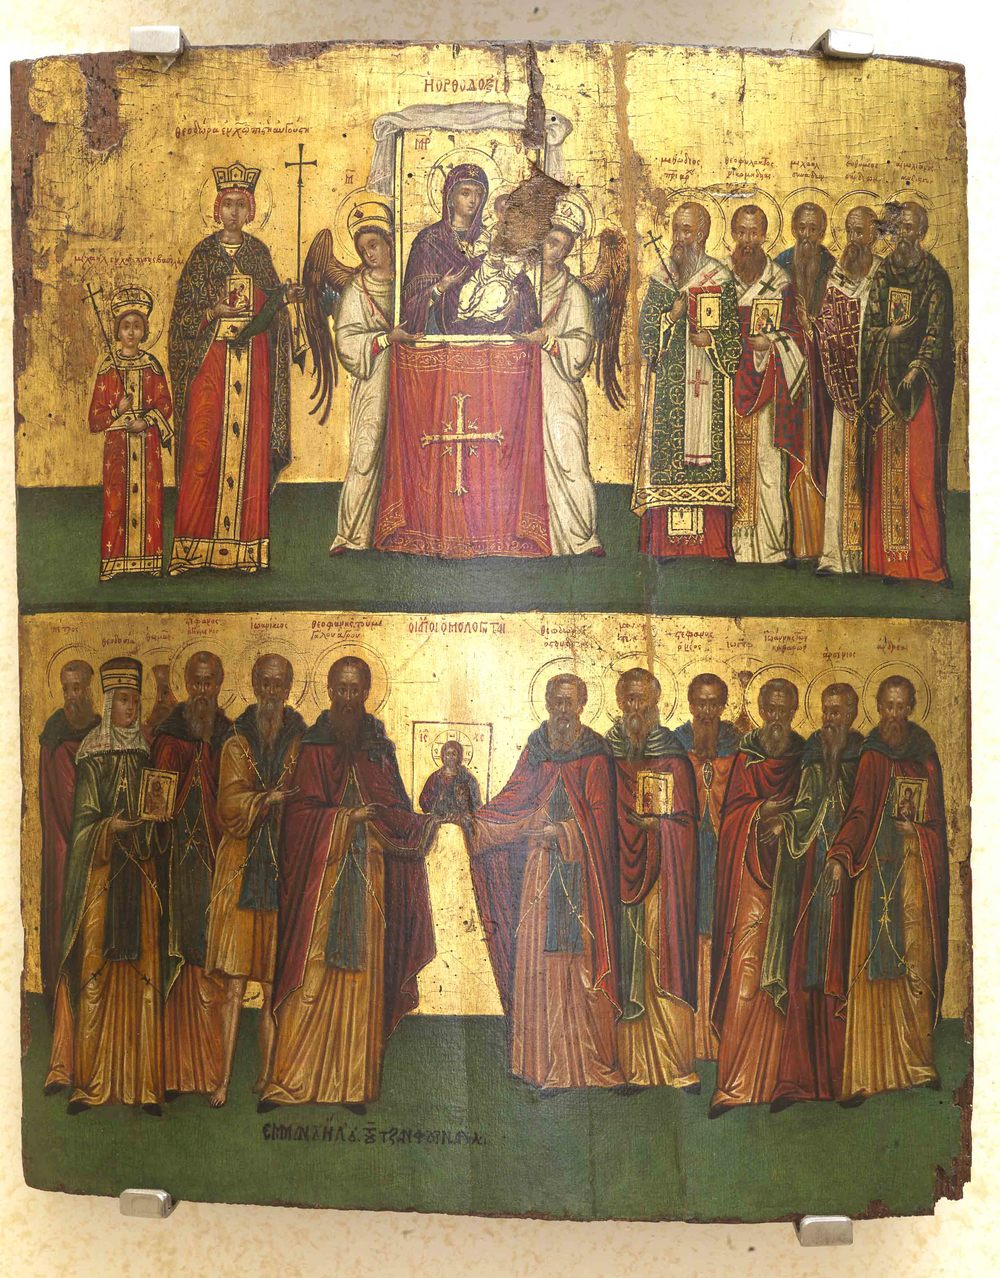 The Restoration of the Holy Icons